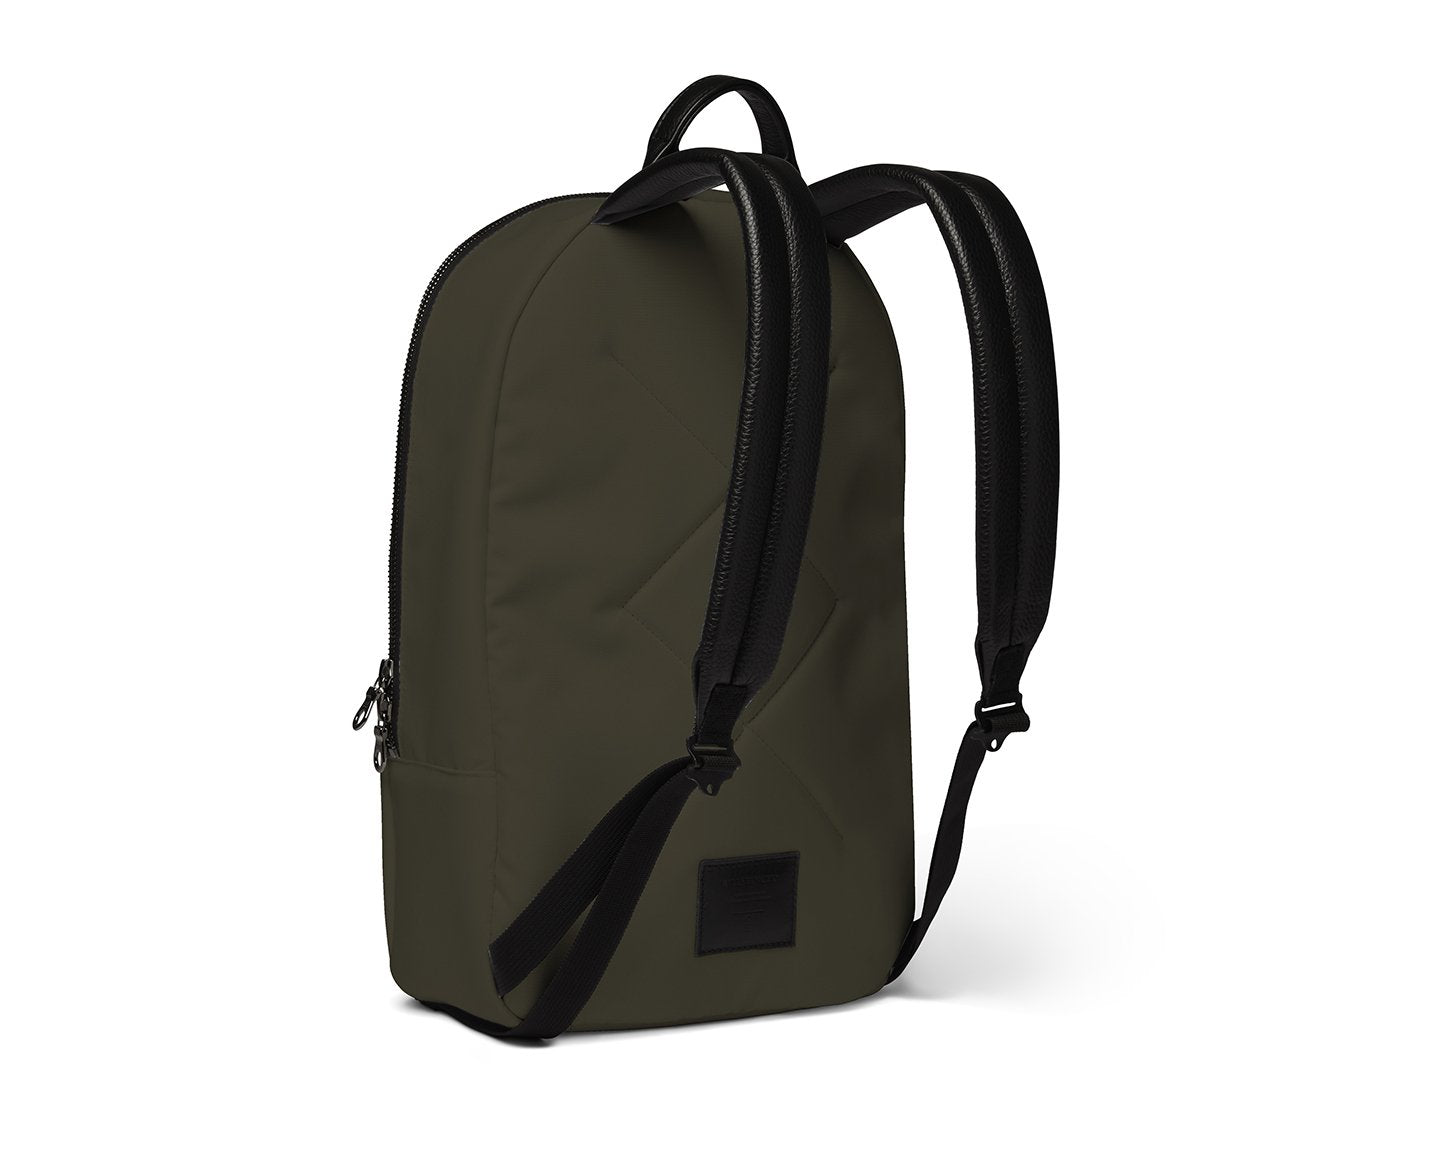 SPECIAL OPS BACKPACK 3.0 | KILLSPENCER® - Mud Nylon